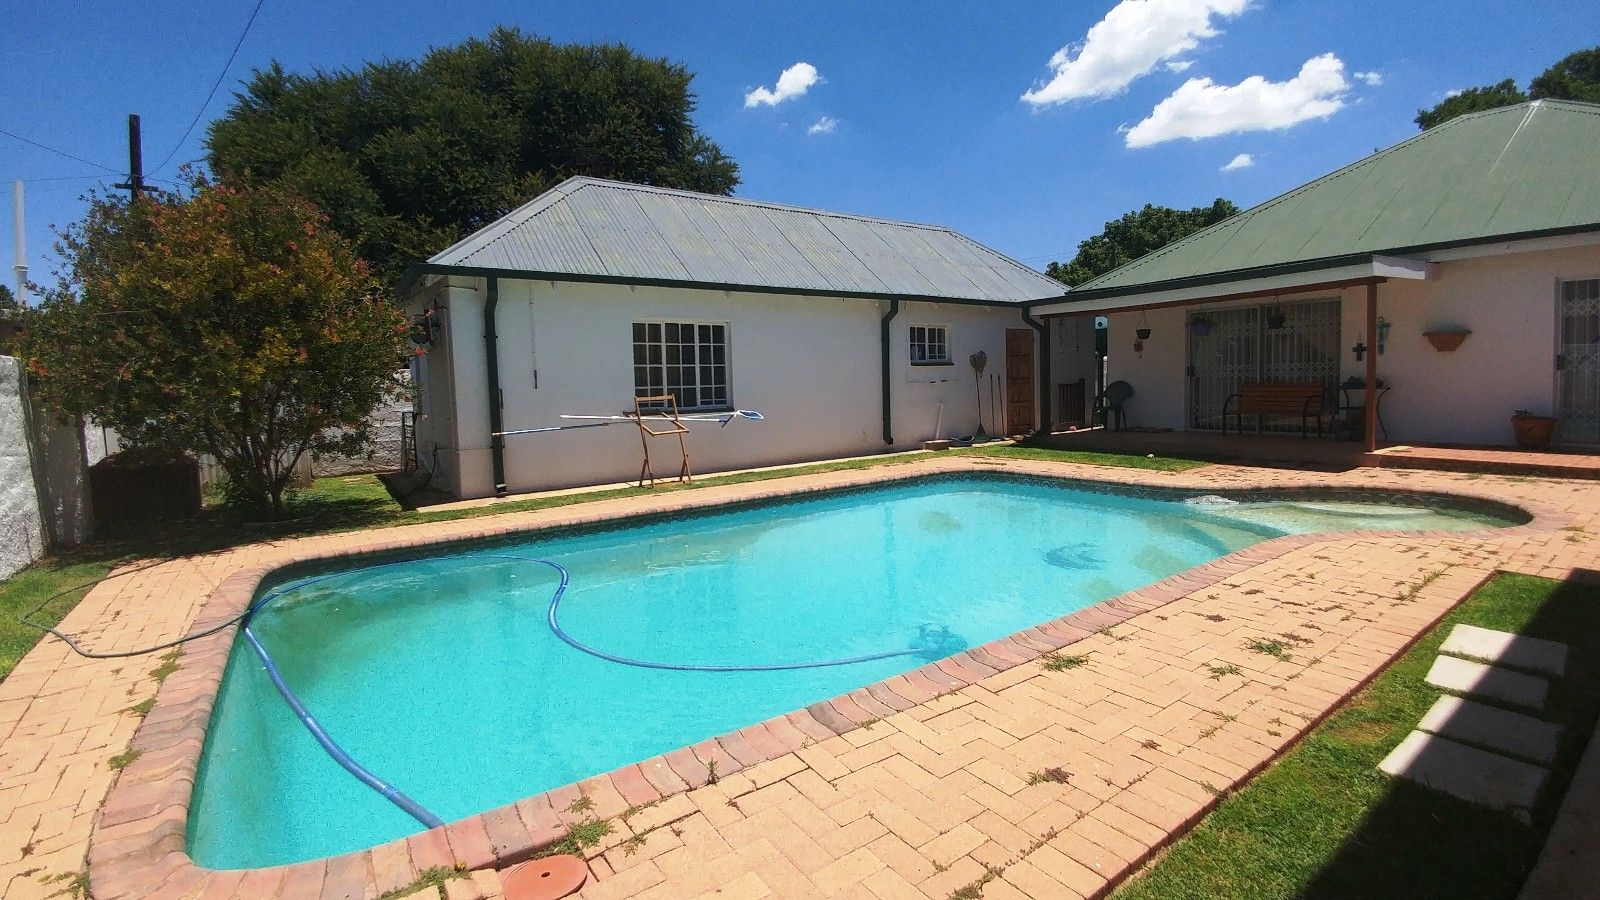 Potchefstroom Central property for sale. Ref No: 13460775. Picture no 3